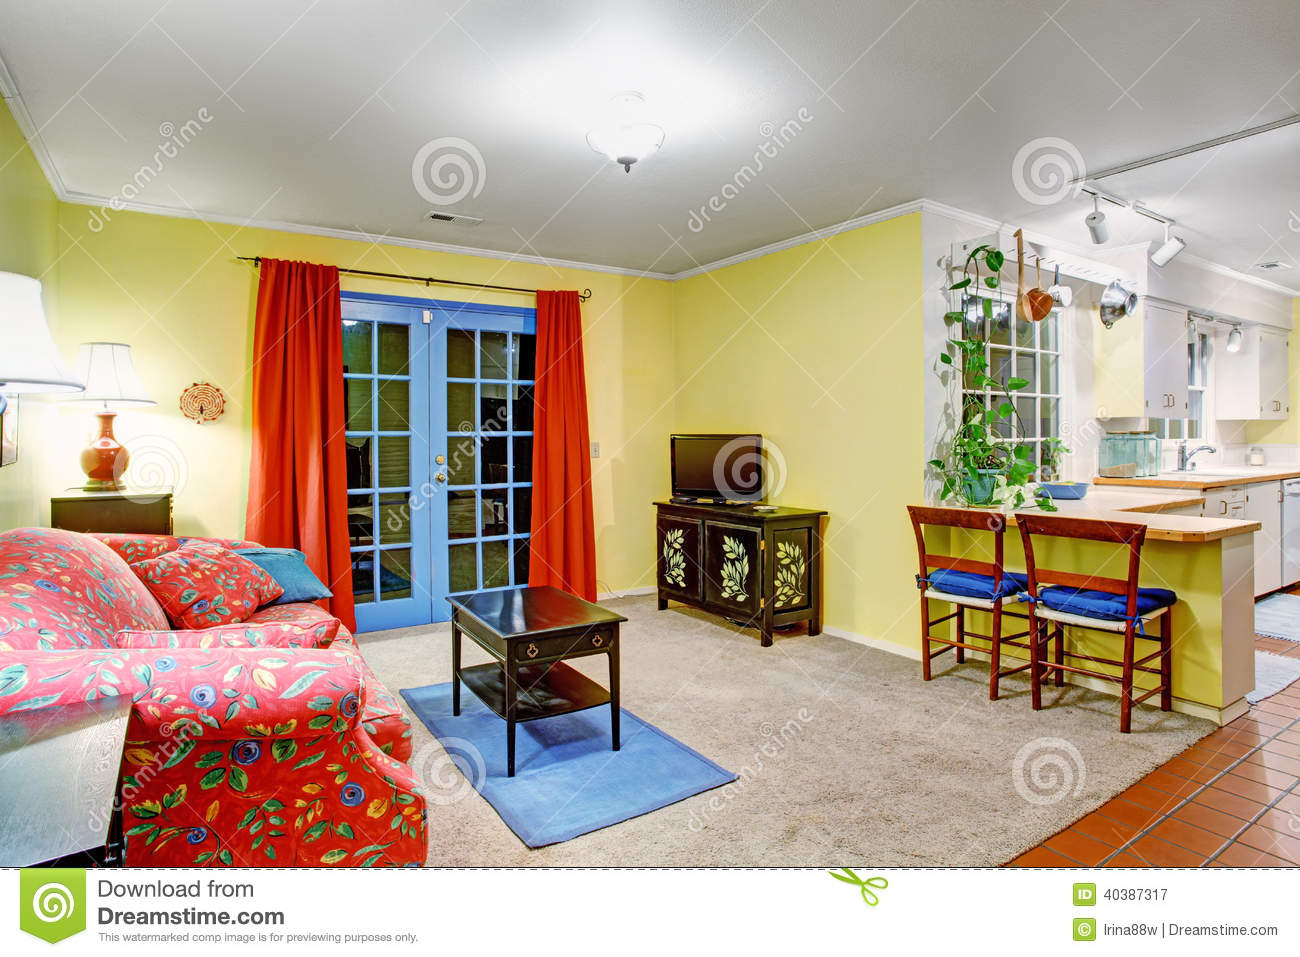 Fantastic Colors In House Interiors Image - Coloring Page ...